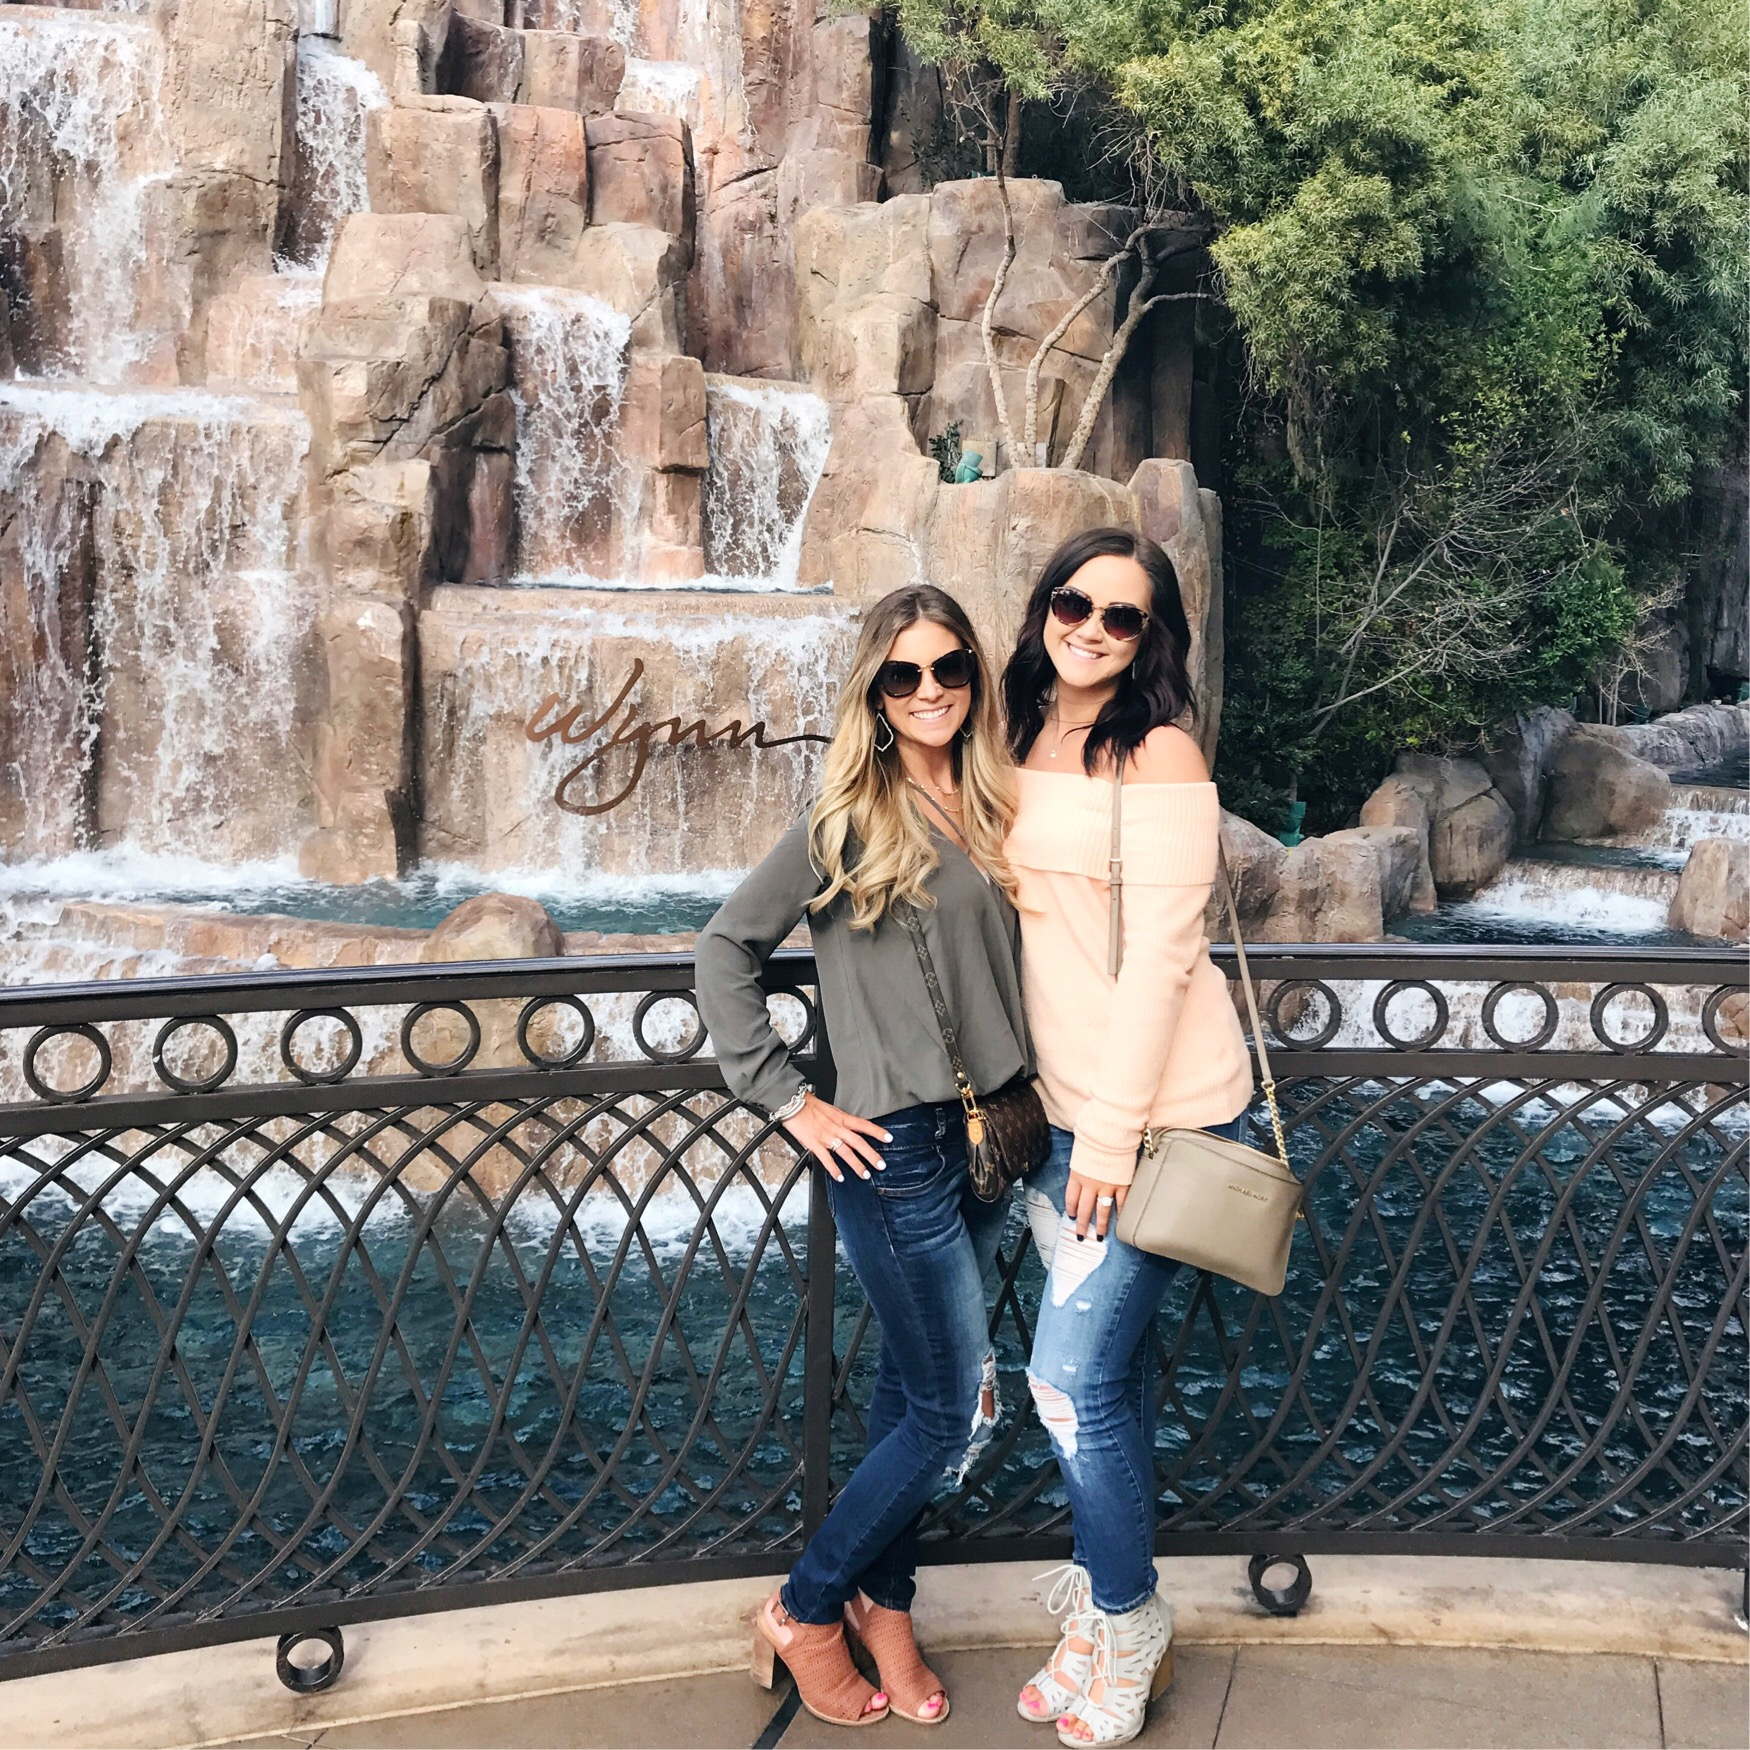 Guide for what to do in Las Vegas! Where to stay, what to eat, what shows to see and where to shop. Click through to see all of my recommendations at littleloveliesblog.com